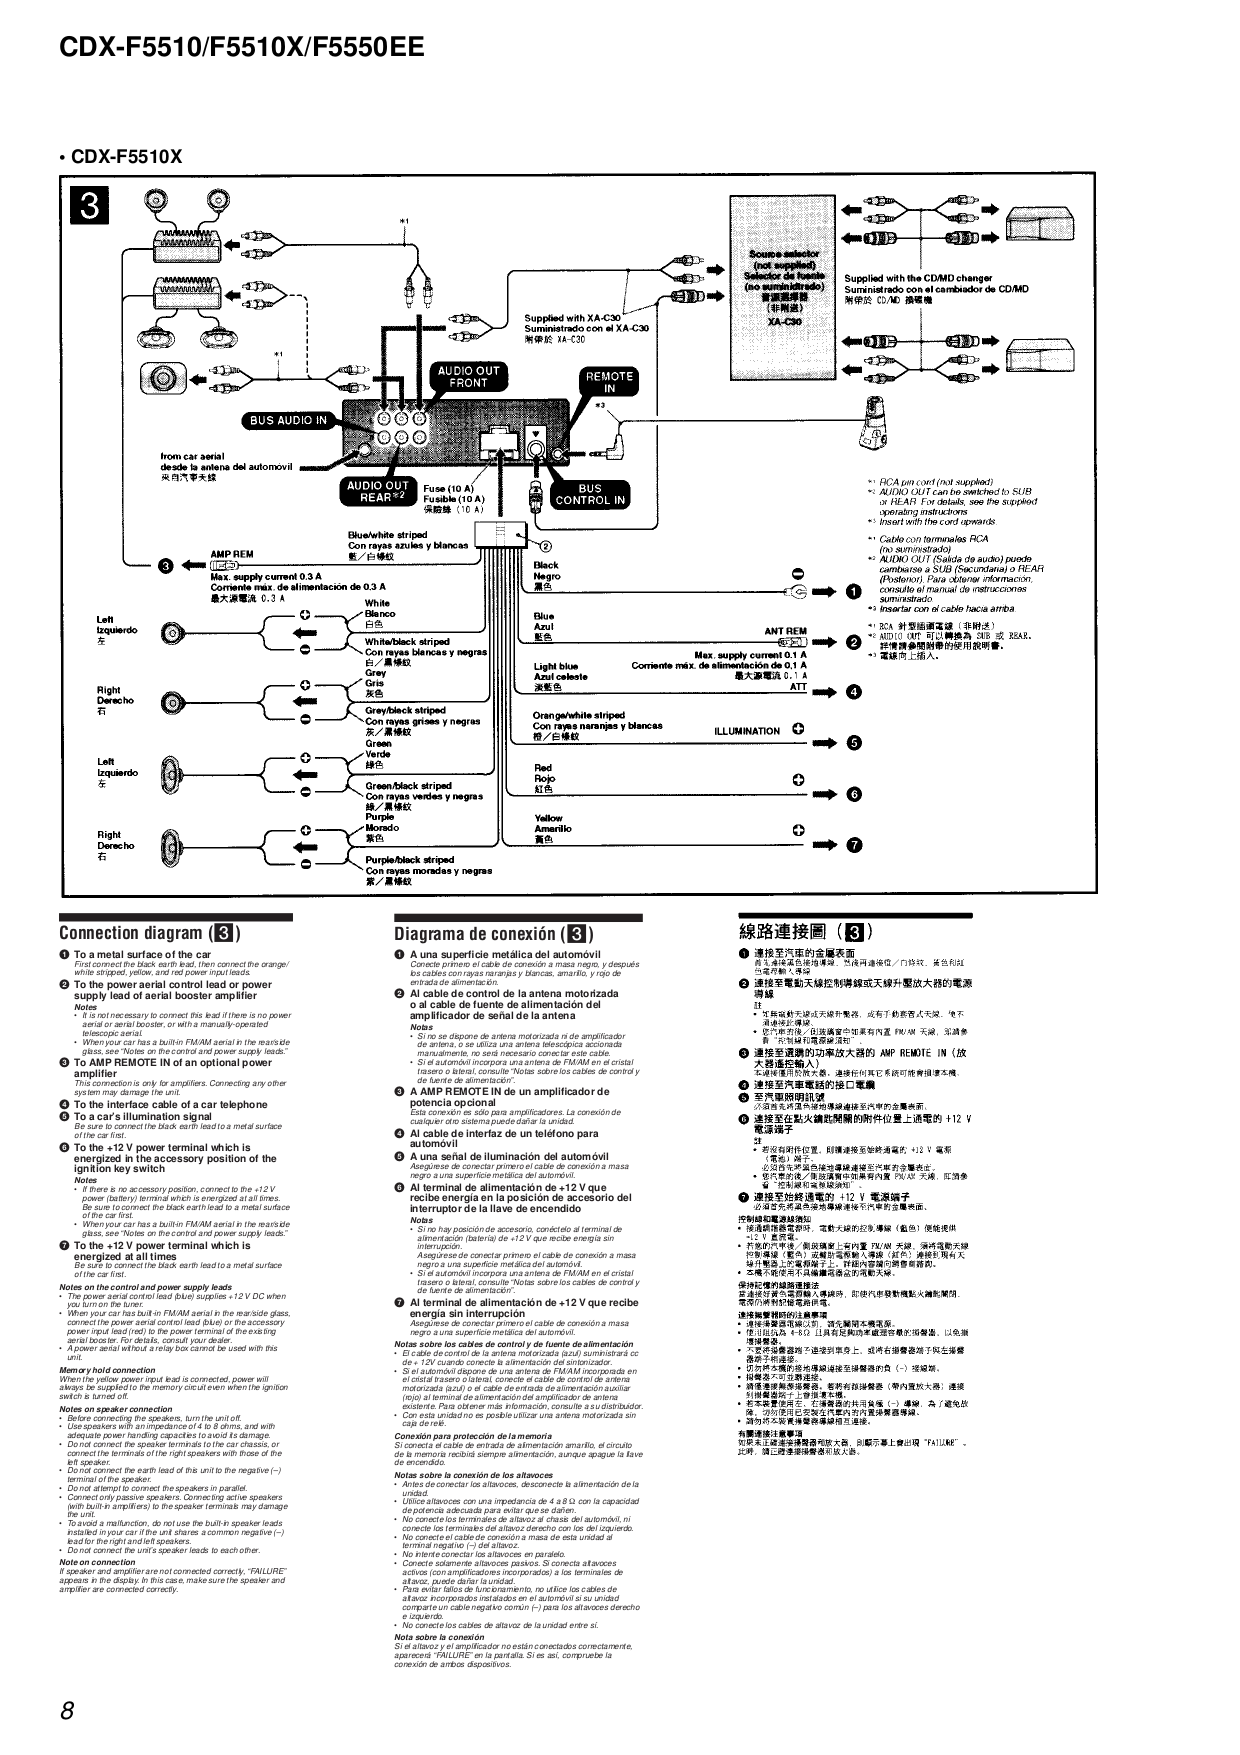 Sony Reciever Wiring Diagrams Stereo System Diagram Ford F 150 Pdf Manual For Car Receiver Cdx F5510 Harness Wire